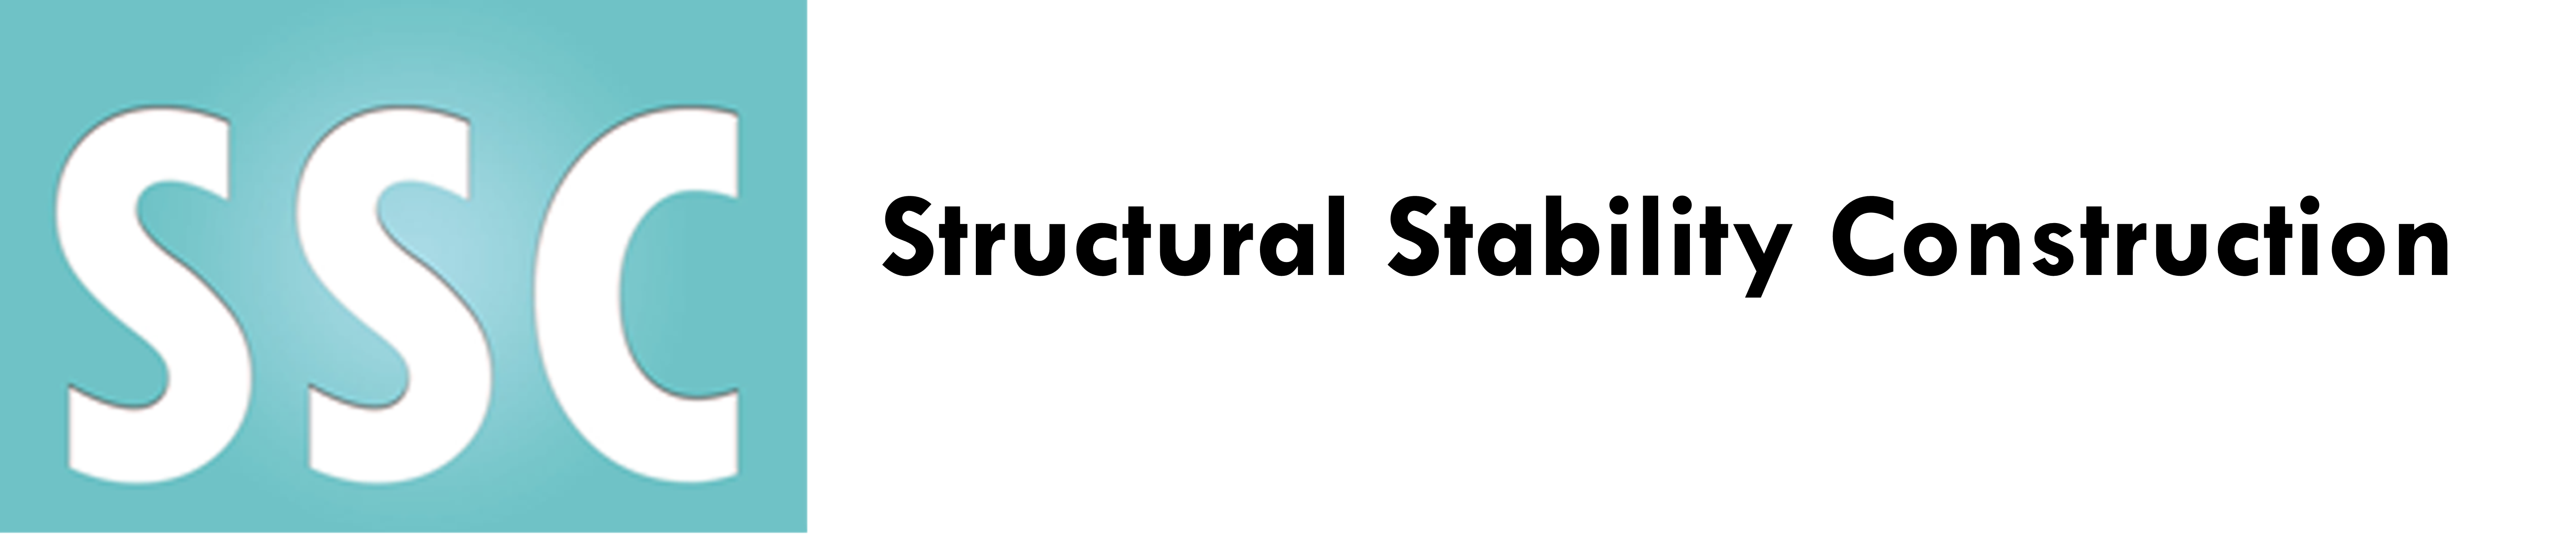 Construction Structural Stability